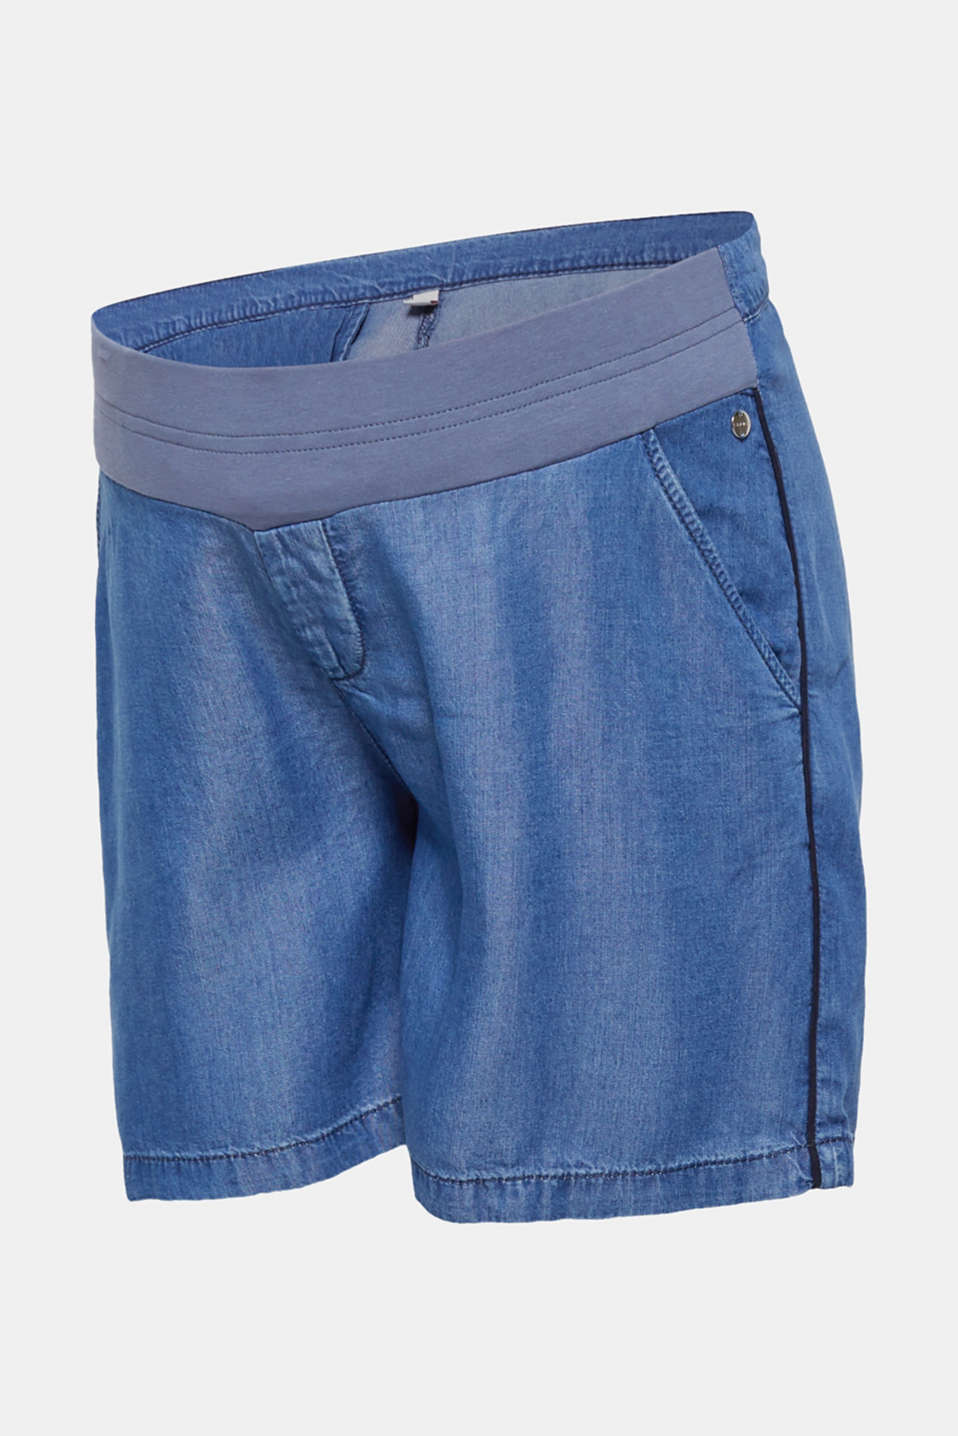 Esprit - Shorts i denimlook, 100% lyocell